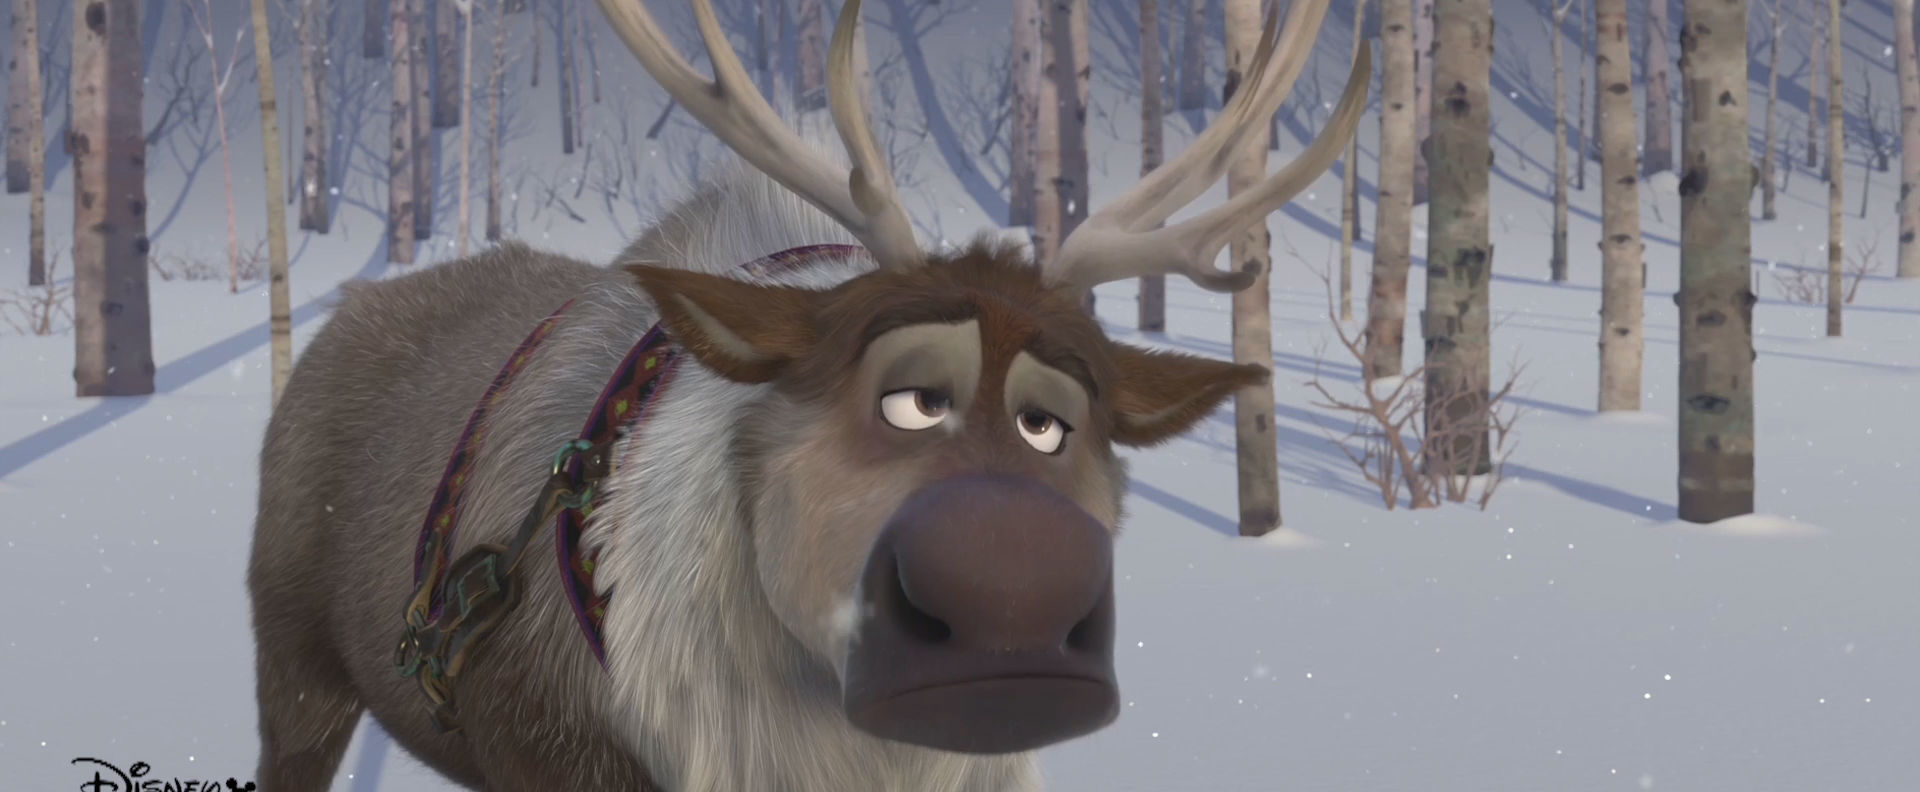 Disney's Olaf-a-Lots - Reining In Your Reindeer